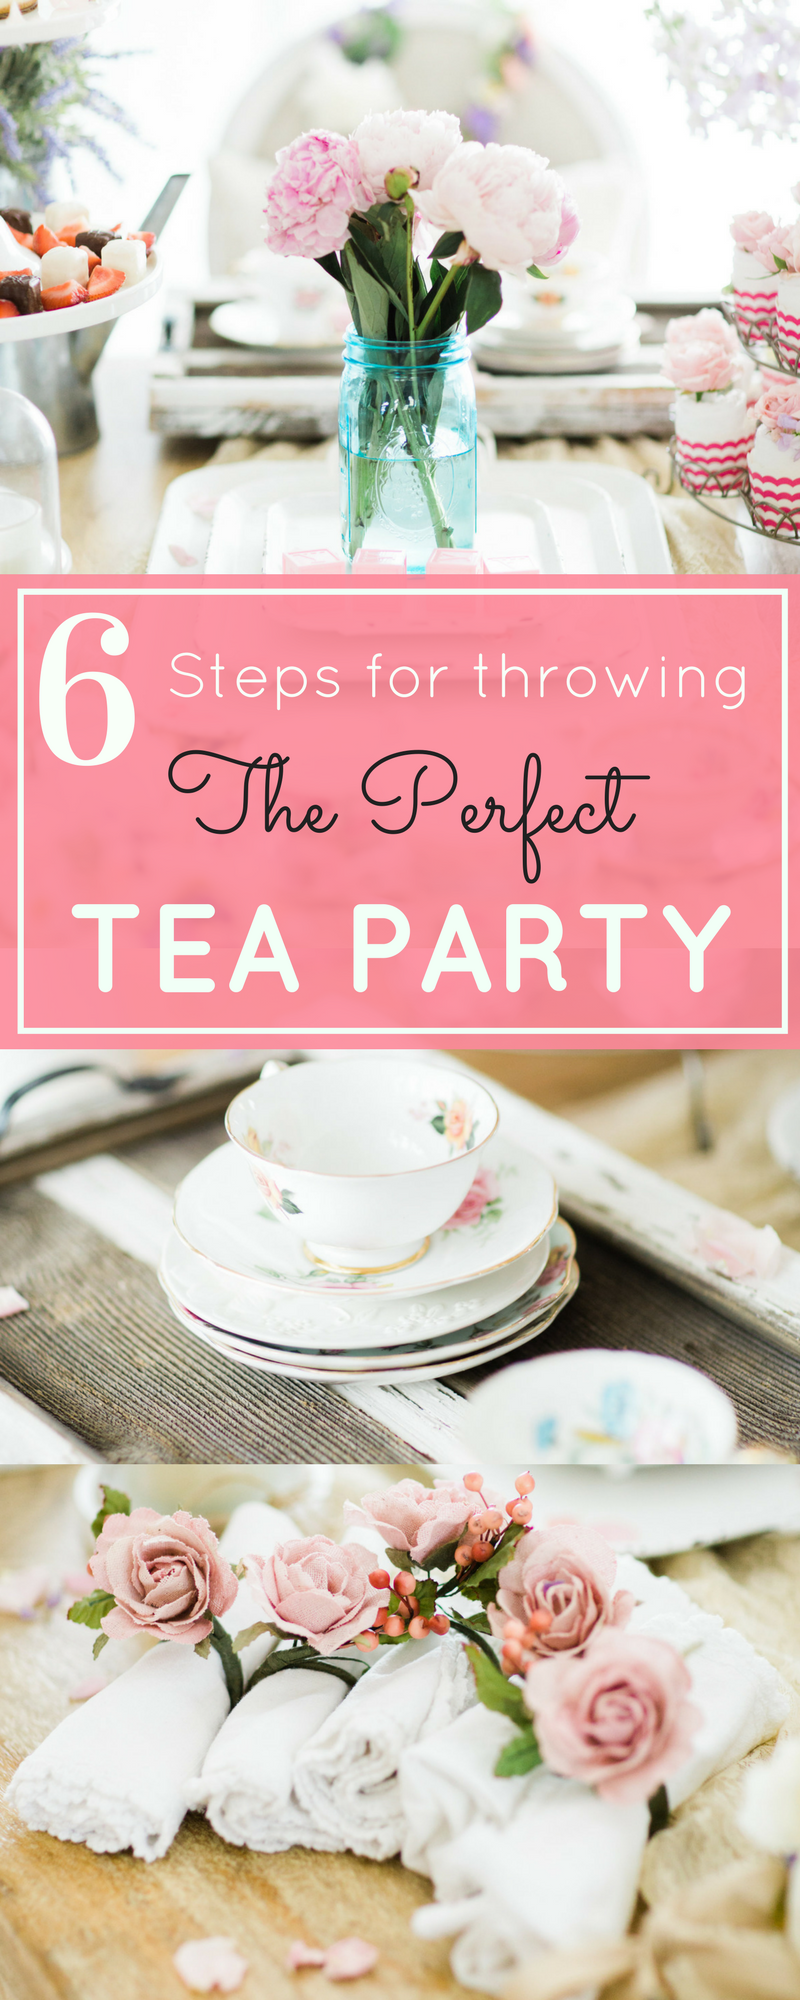 Throw the perfect tea party in just  6 easy steps! | glitterinc.com | @glitterinc